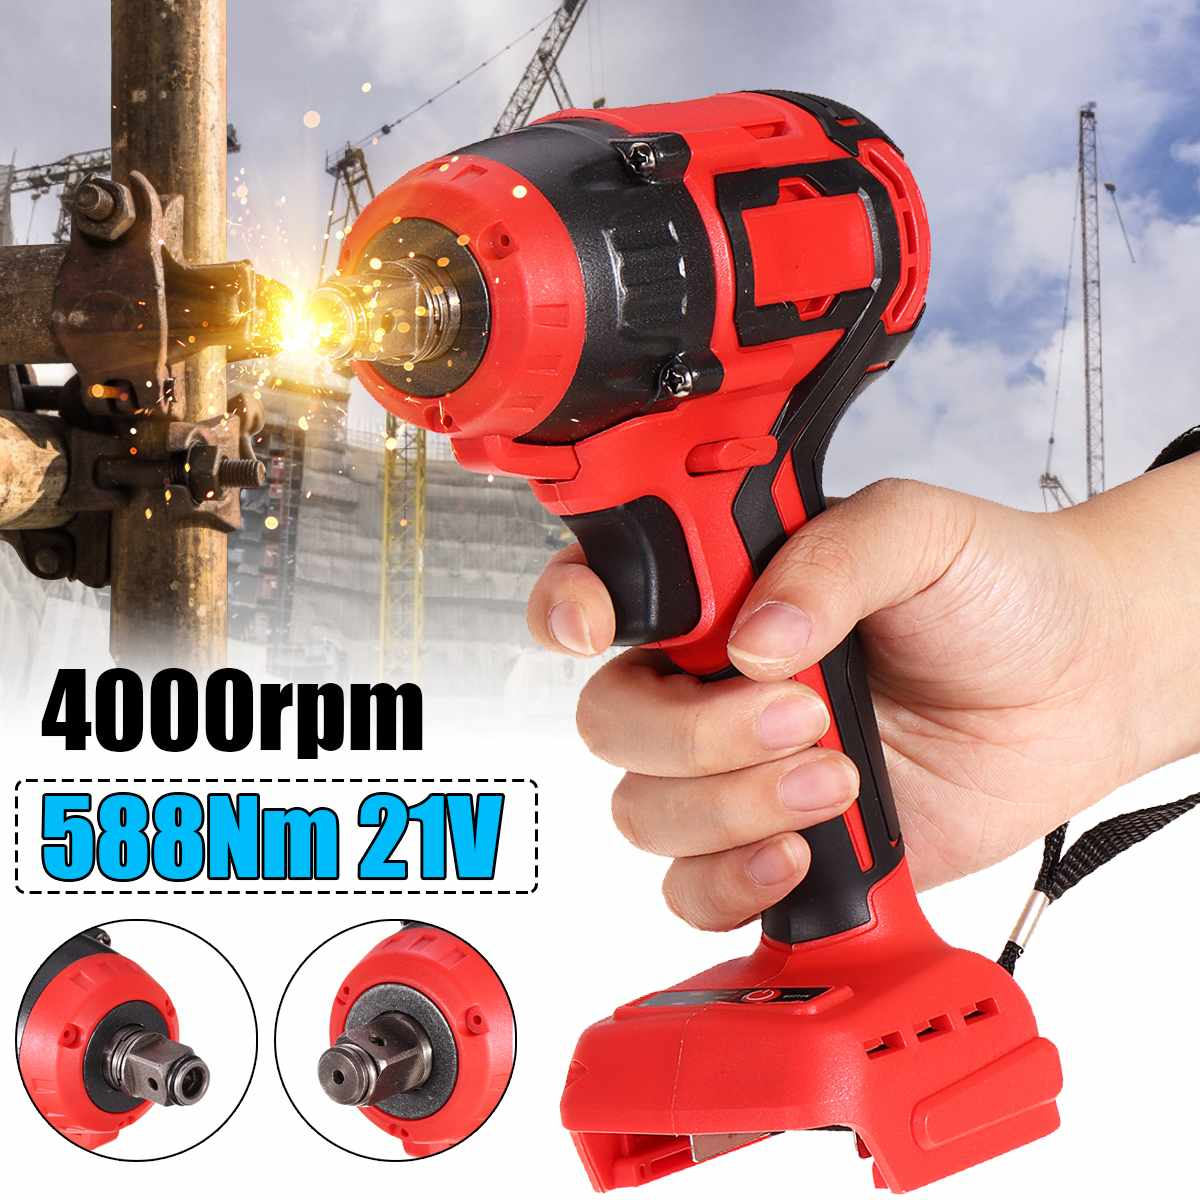 21V 588Nm Electric Brushless Impact Wrench Rechargeable Wrench Power Tool Cordless With 3 LED Light Without Battery Accessories